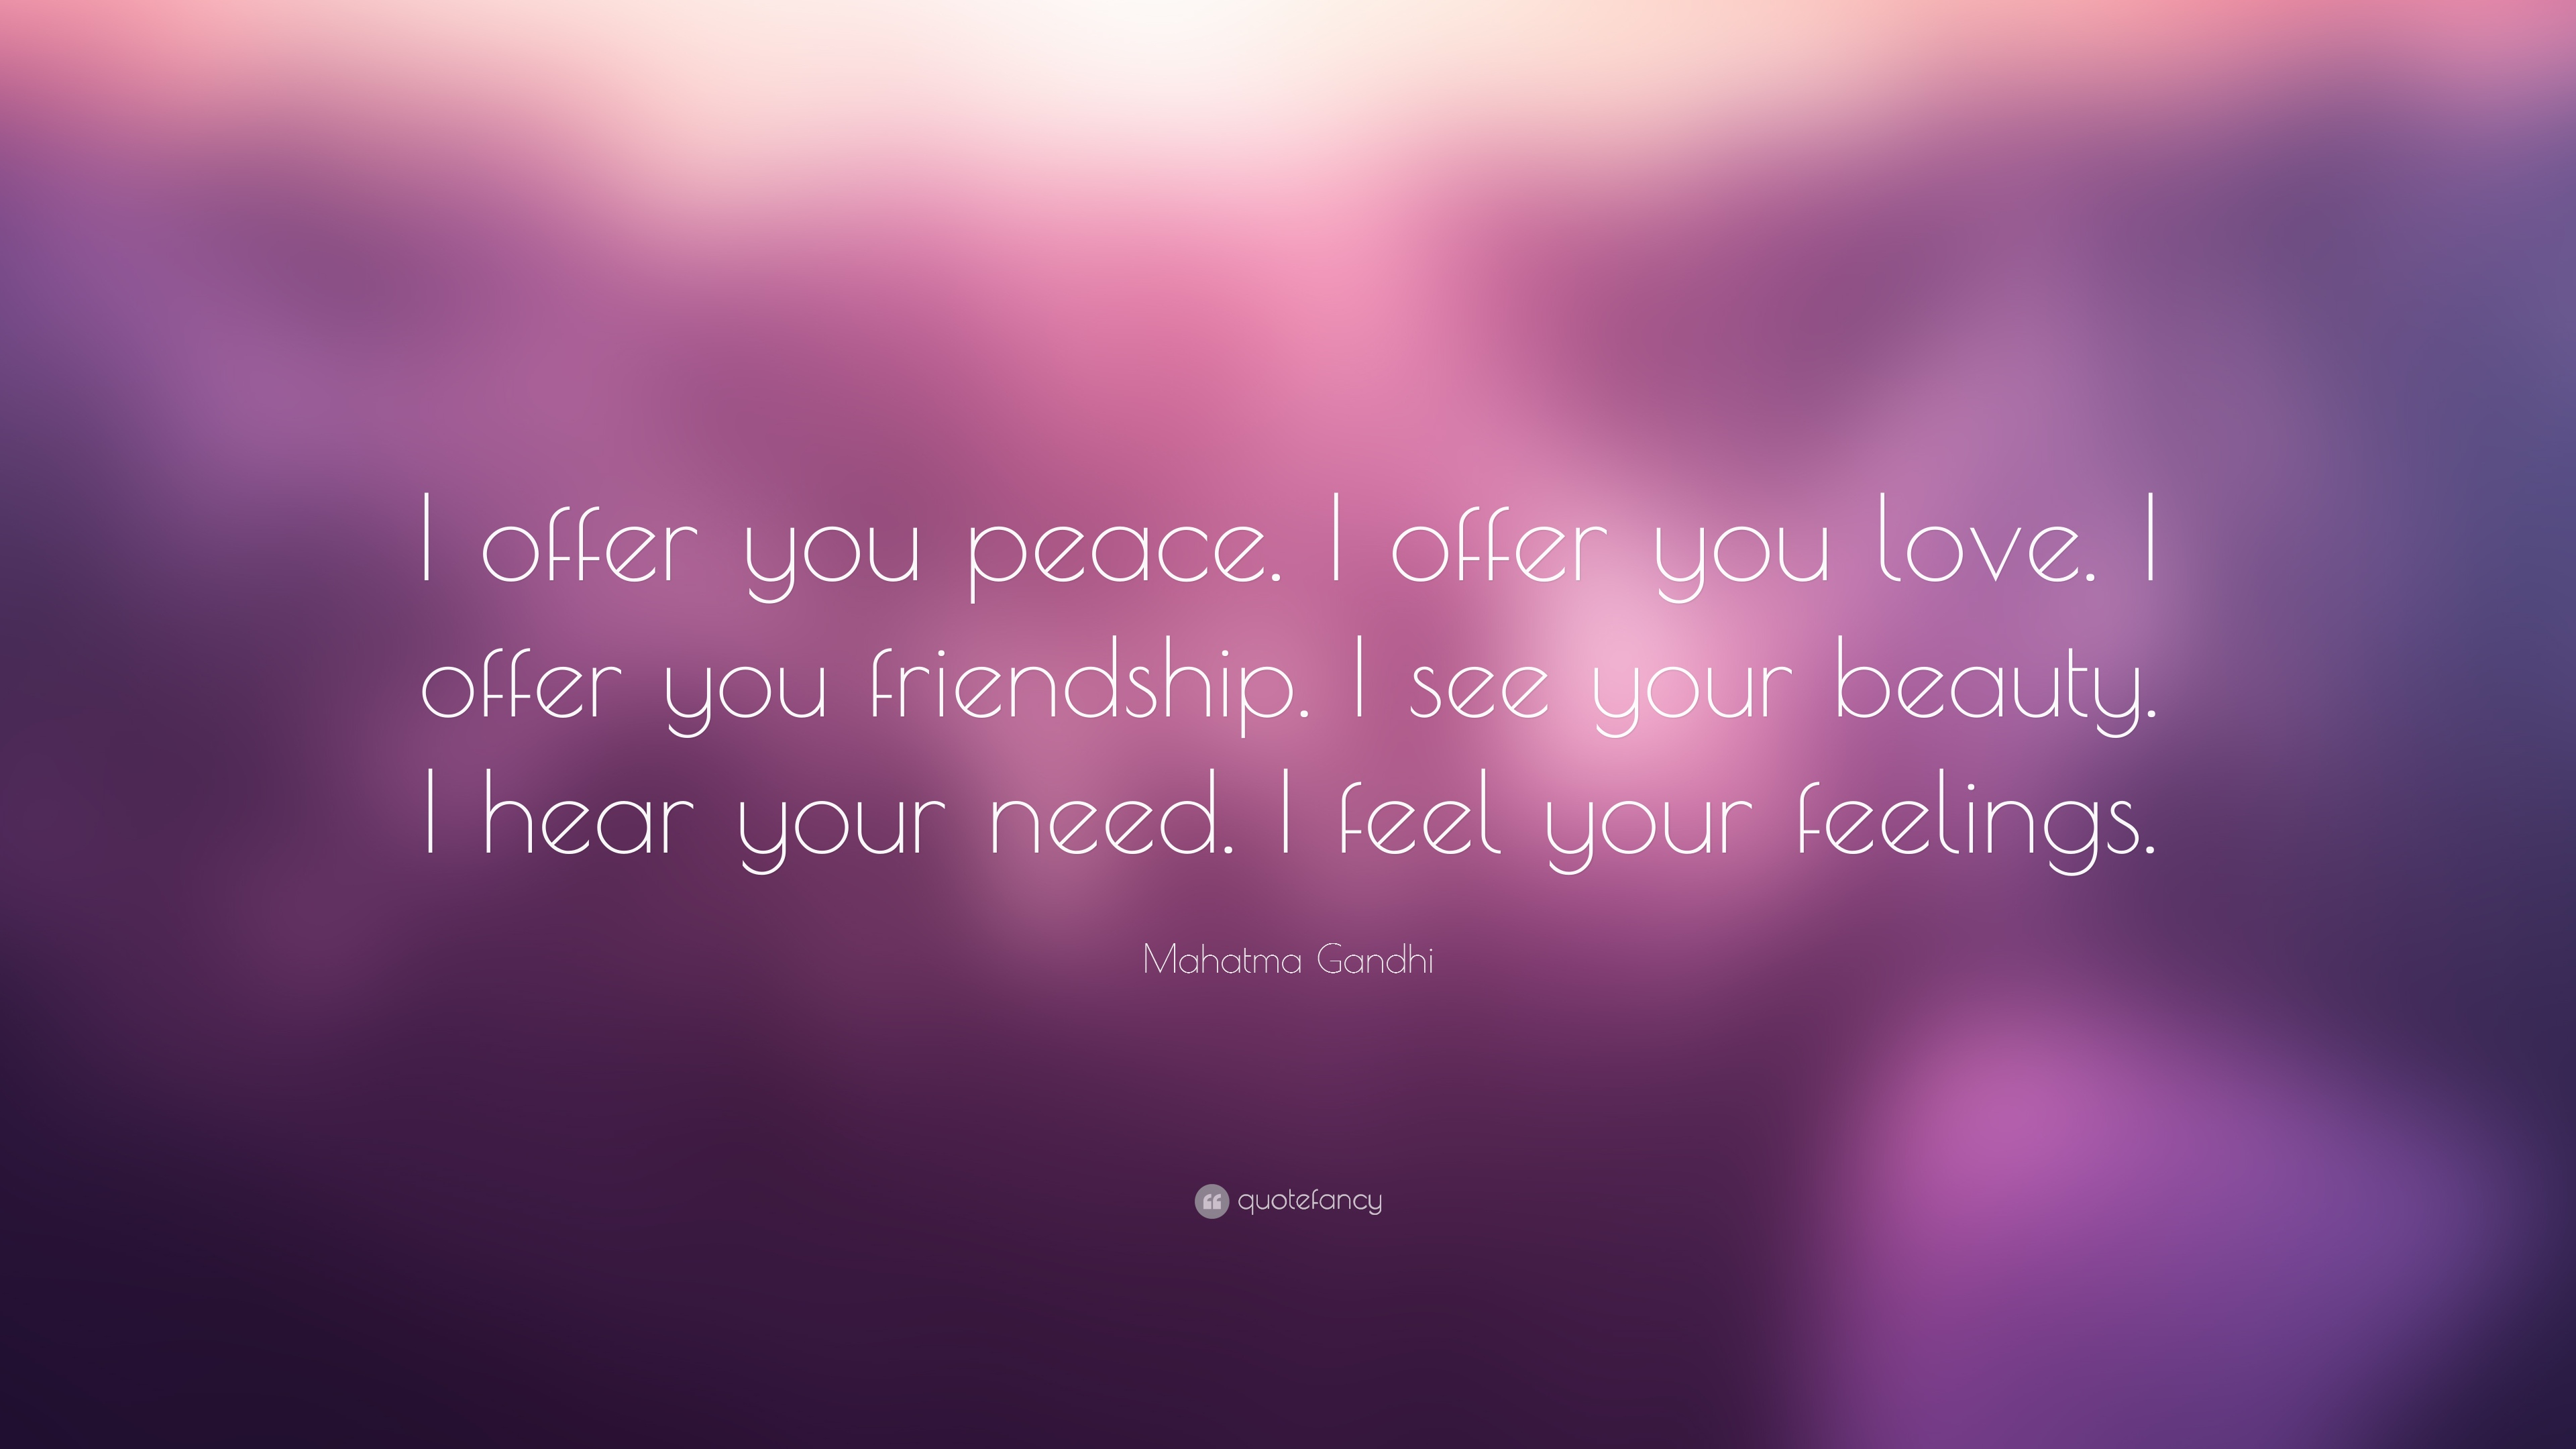 Great Wallpaper Love Feel - 45312-Mahatma-Gandhi-Quote-I-offer-you-peace-I-offer-you-love-I-offer  Trends_123128.jpg